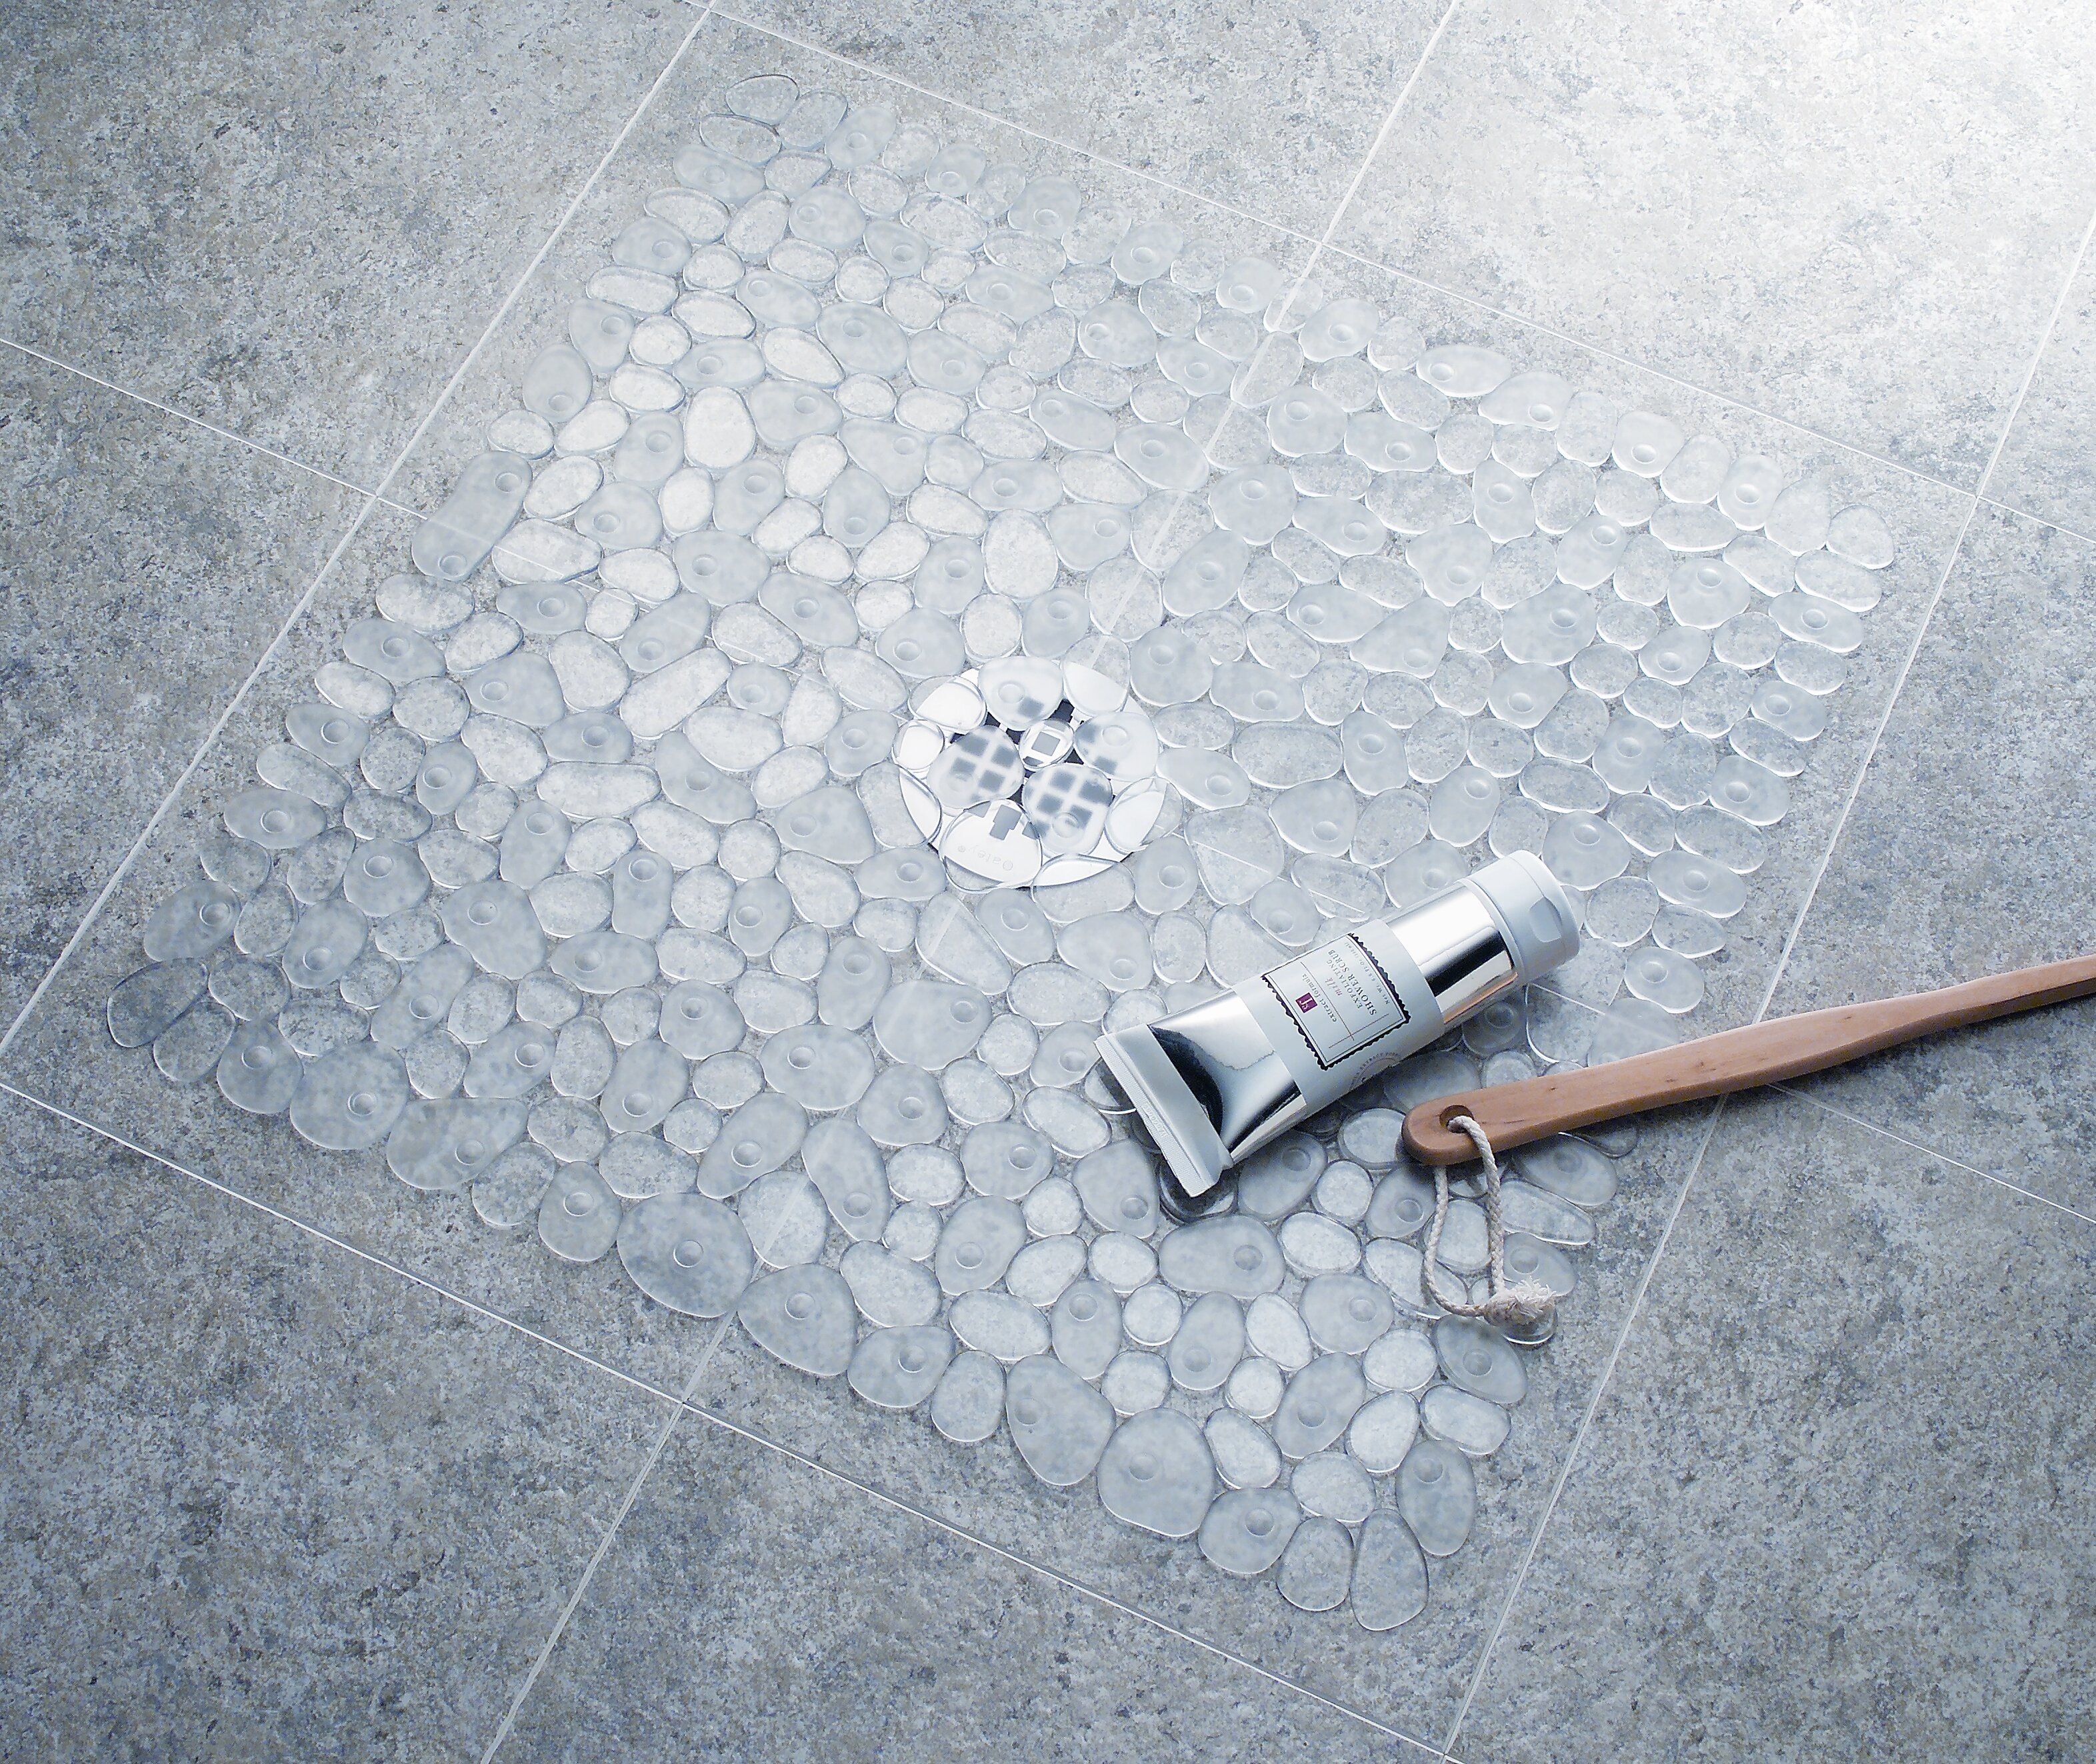 Anti-Slip Textured Surface Pebble Shower Mat-Clear